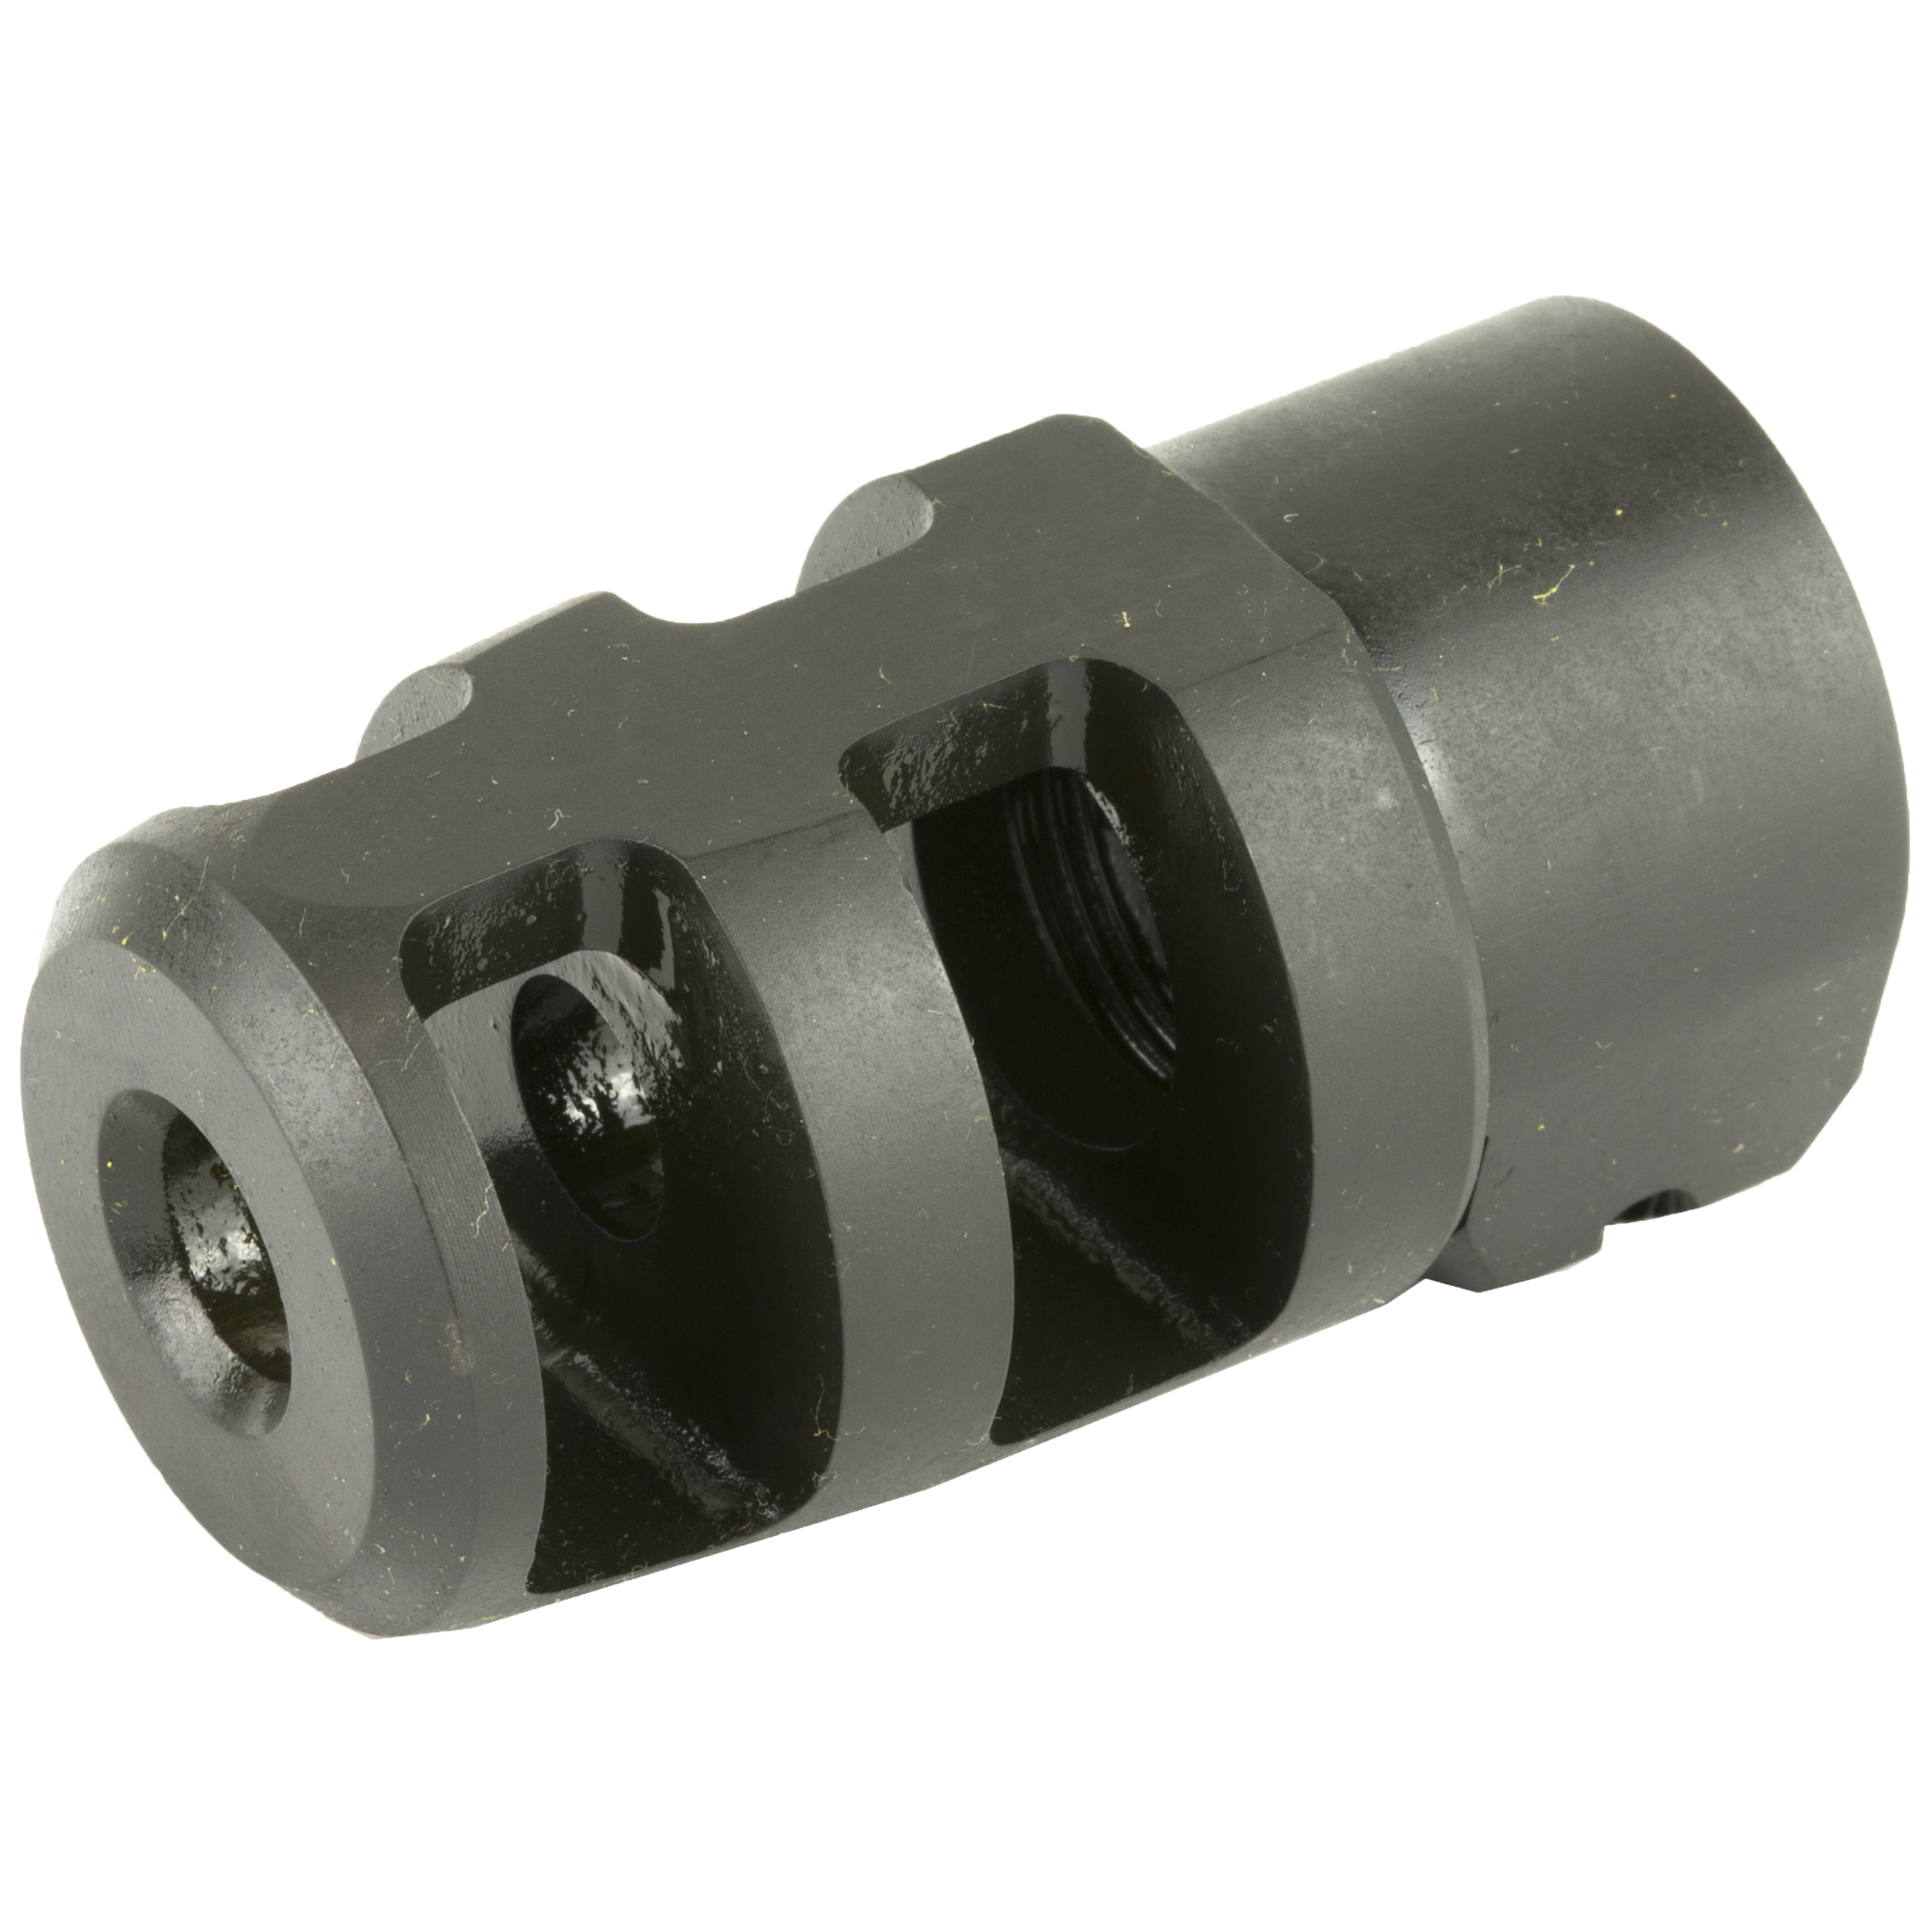 "The Badger Ordnance Mini FTE Muzzle Brake is a smaller version of our FTE brake and designed with both the AR-10/15 platform and medium caliber precision bolt action shooter in mind. While a much smaller design"" it still maintains enough surface area to make it a very effective brake. It is easily removed for cleaning or the installation of a suppressor. Ports are oriented to the sides to reduce ground blast. It is Machined from 4140 steel and Manganese Phosphate finished."